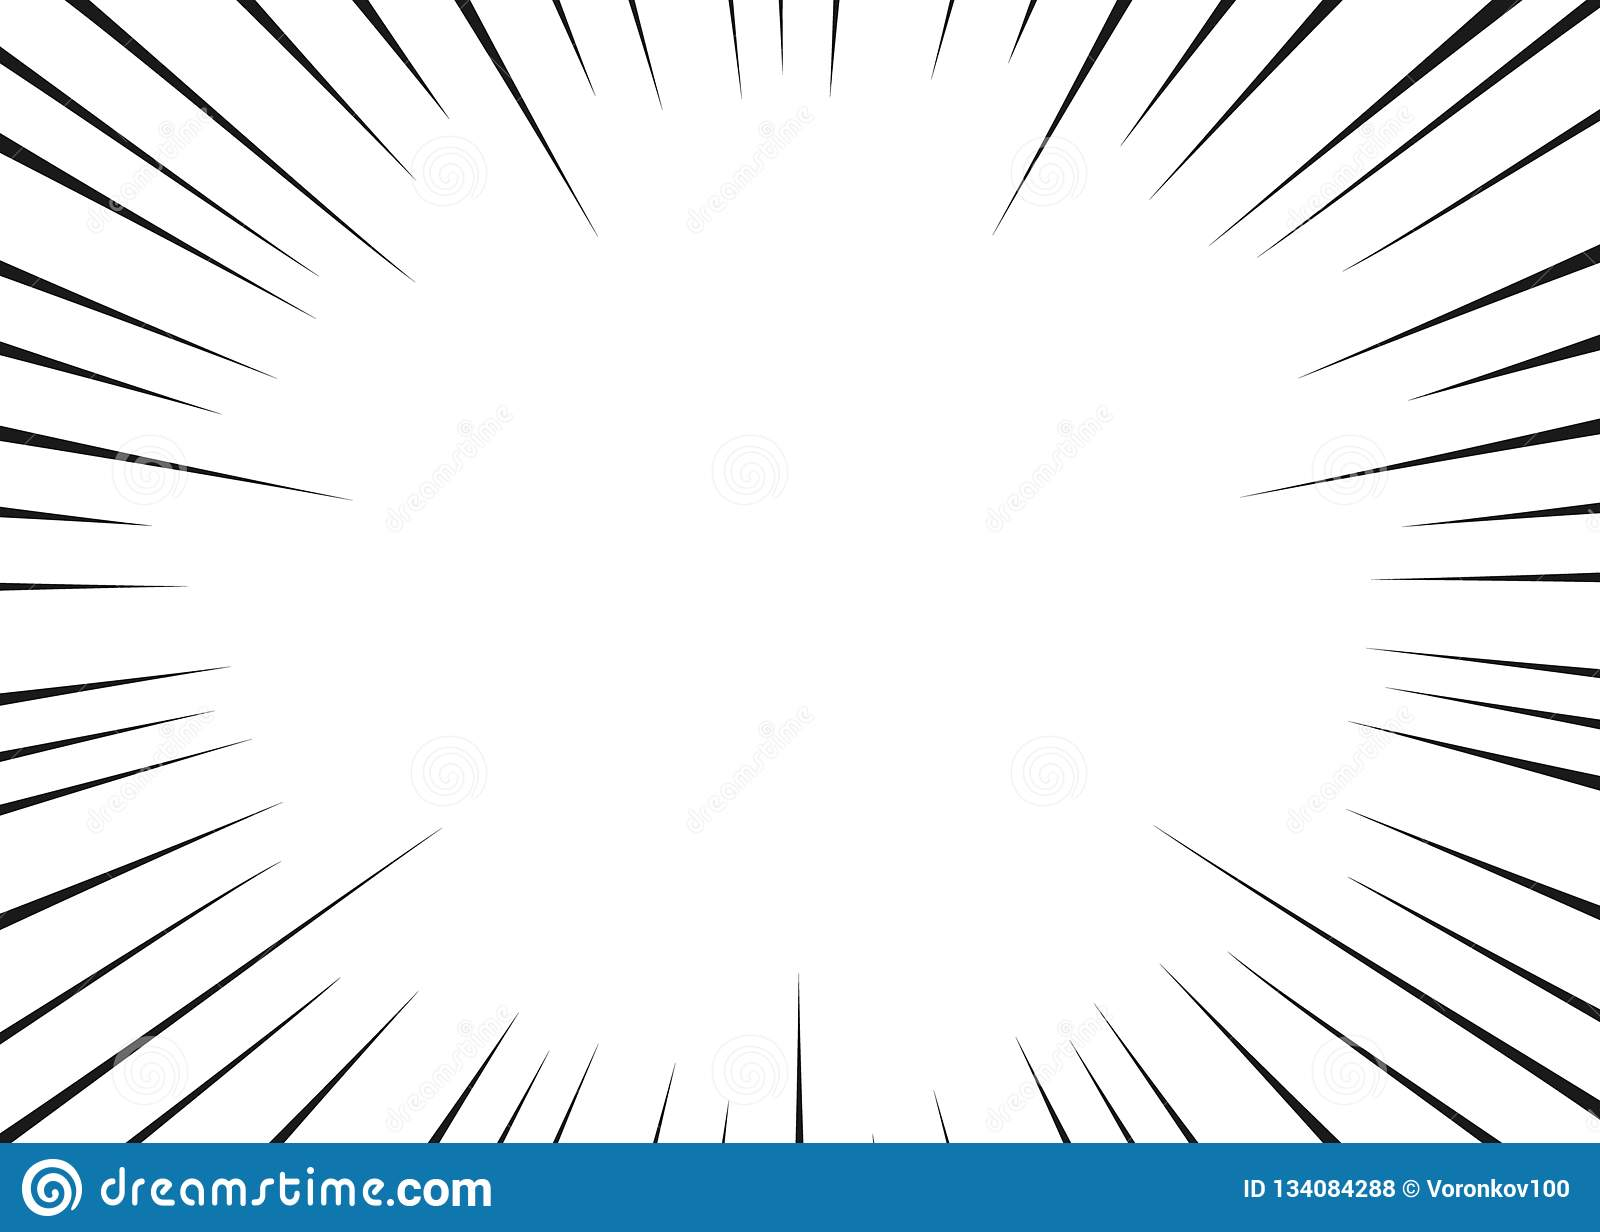 Vector black radial lines for comics, superhero action. Manga frame speed, motion, explosion background. Isolated background.